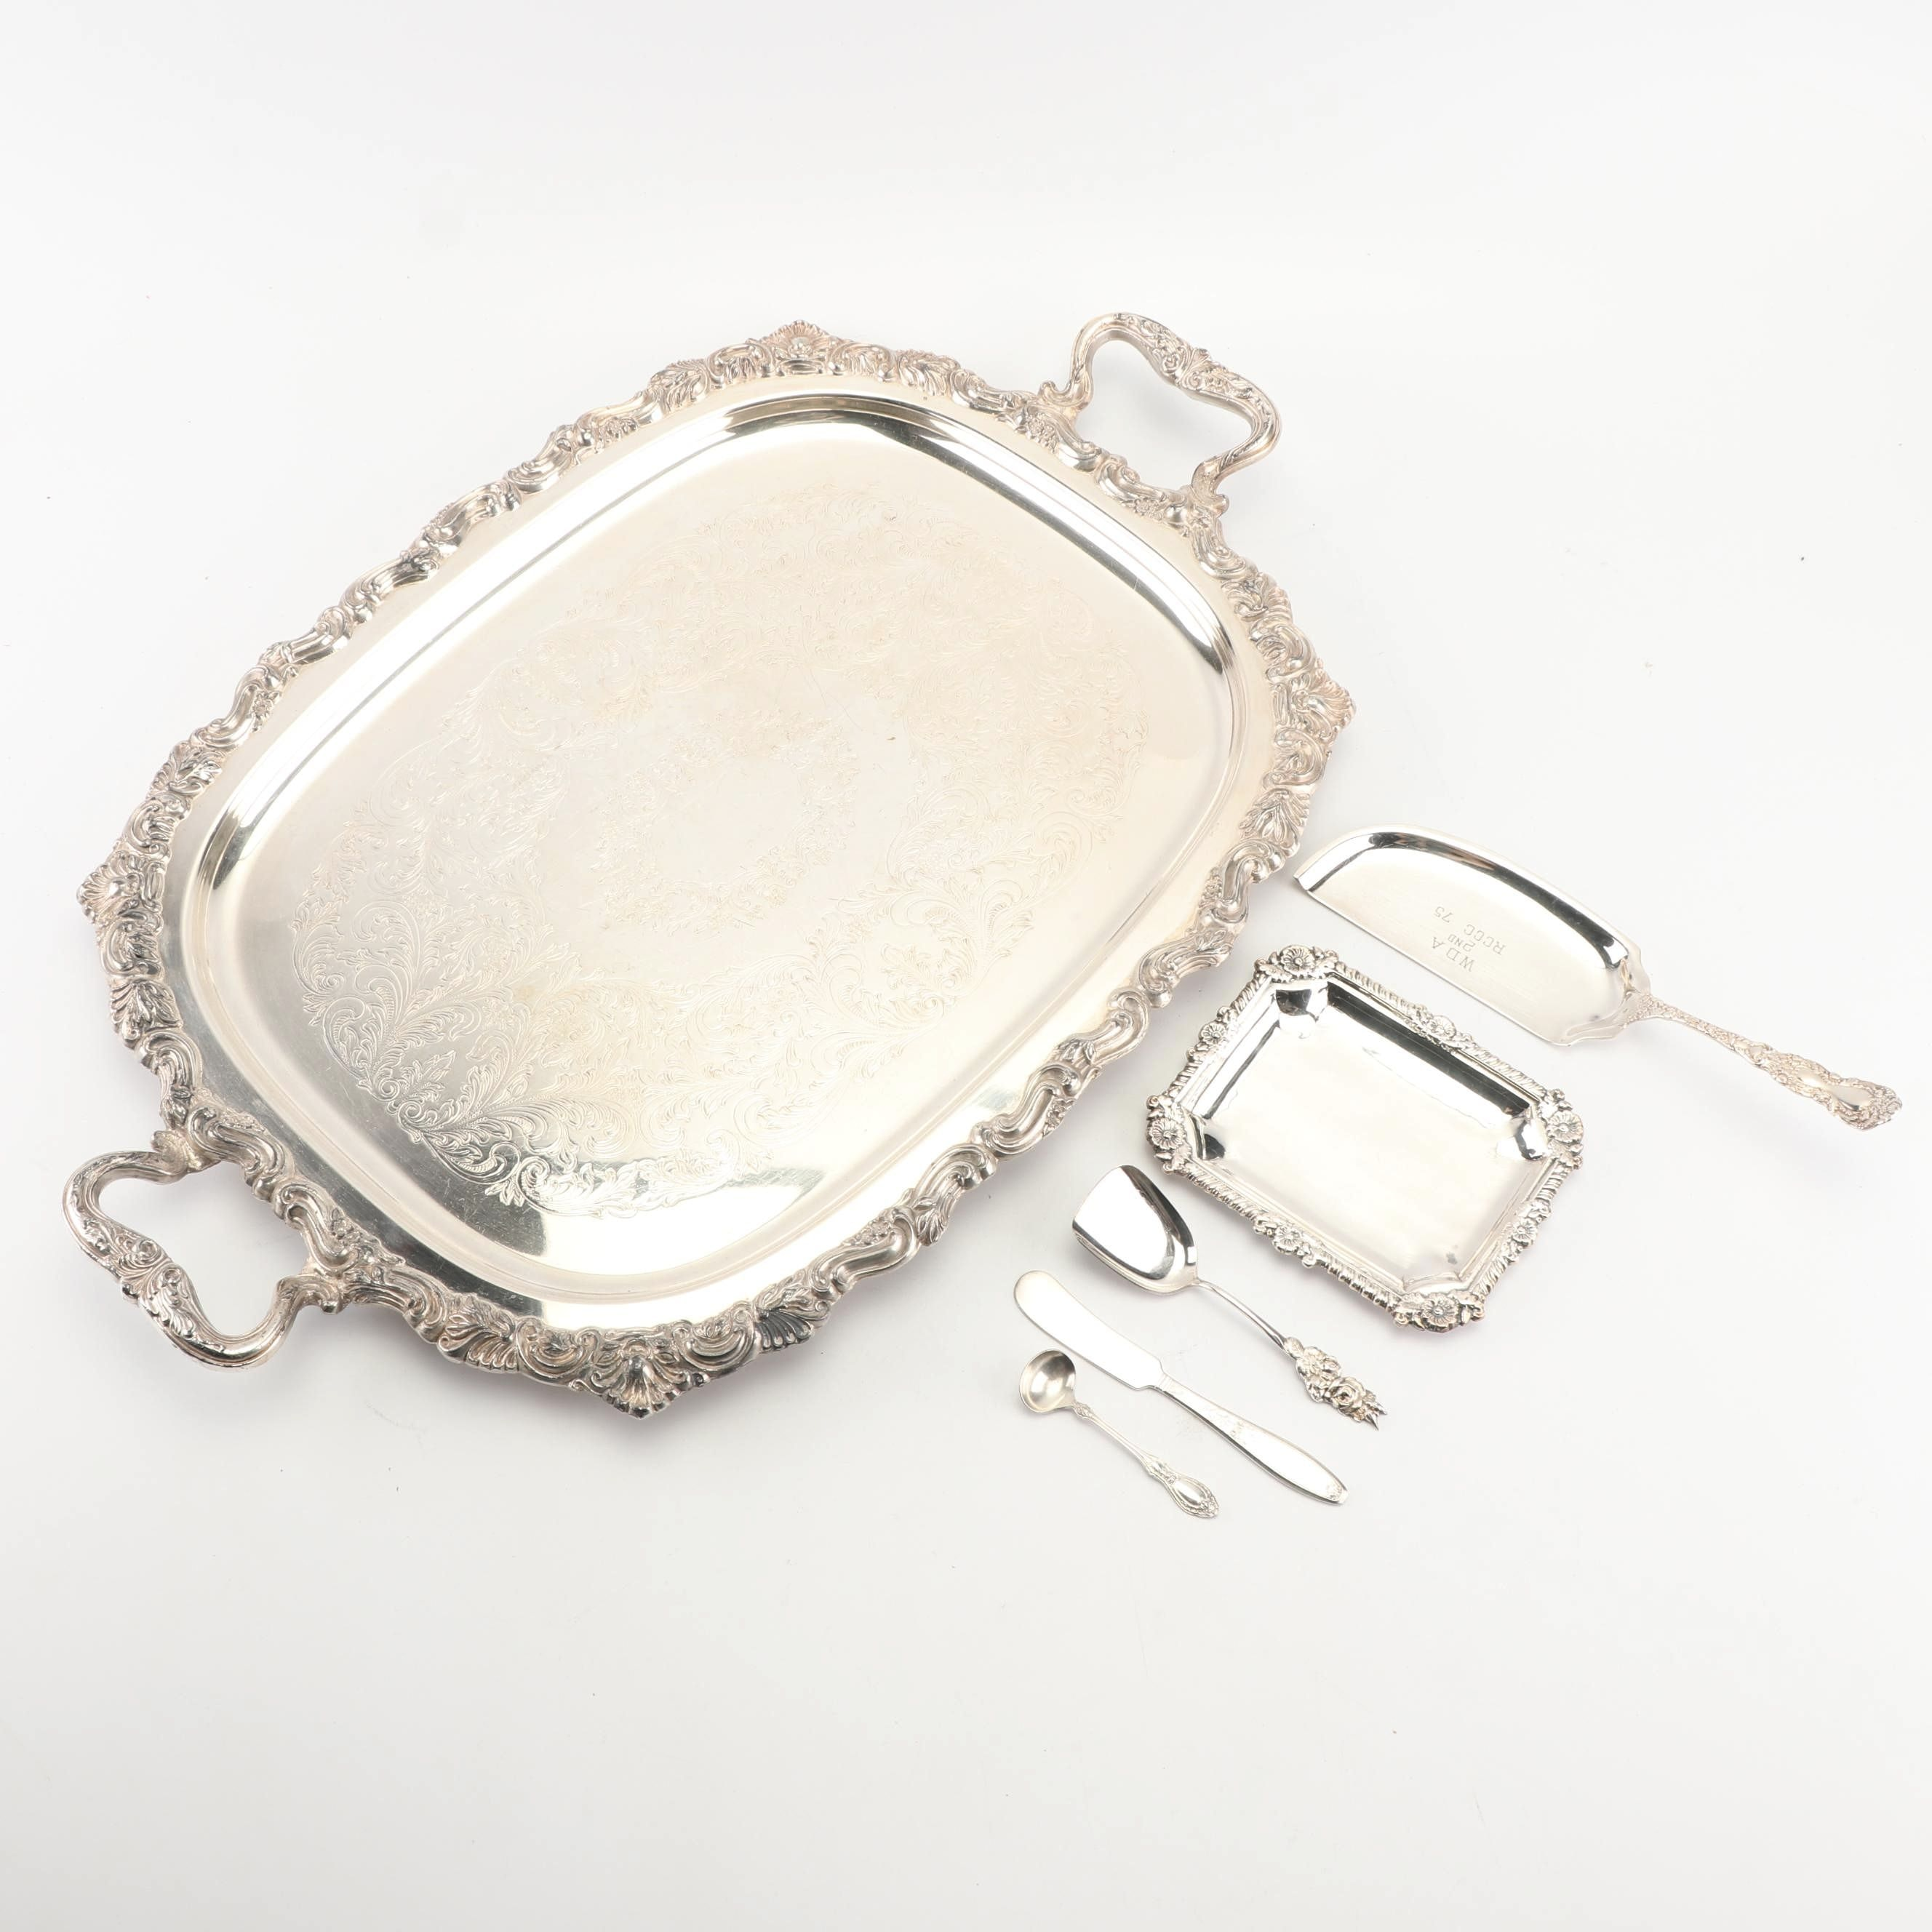 Sheridan Silver Co. Serving Tray with Other Silver Plate Tableware